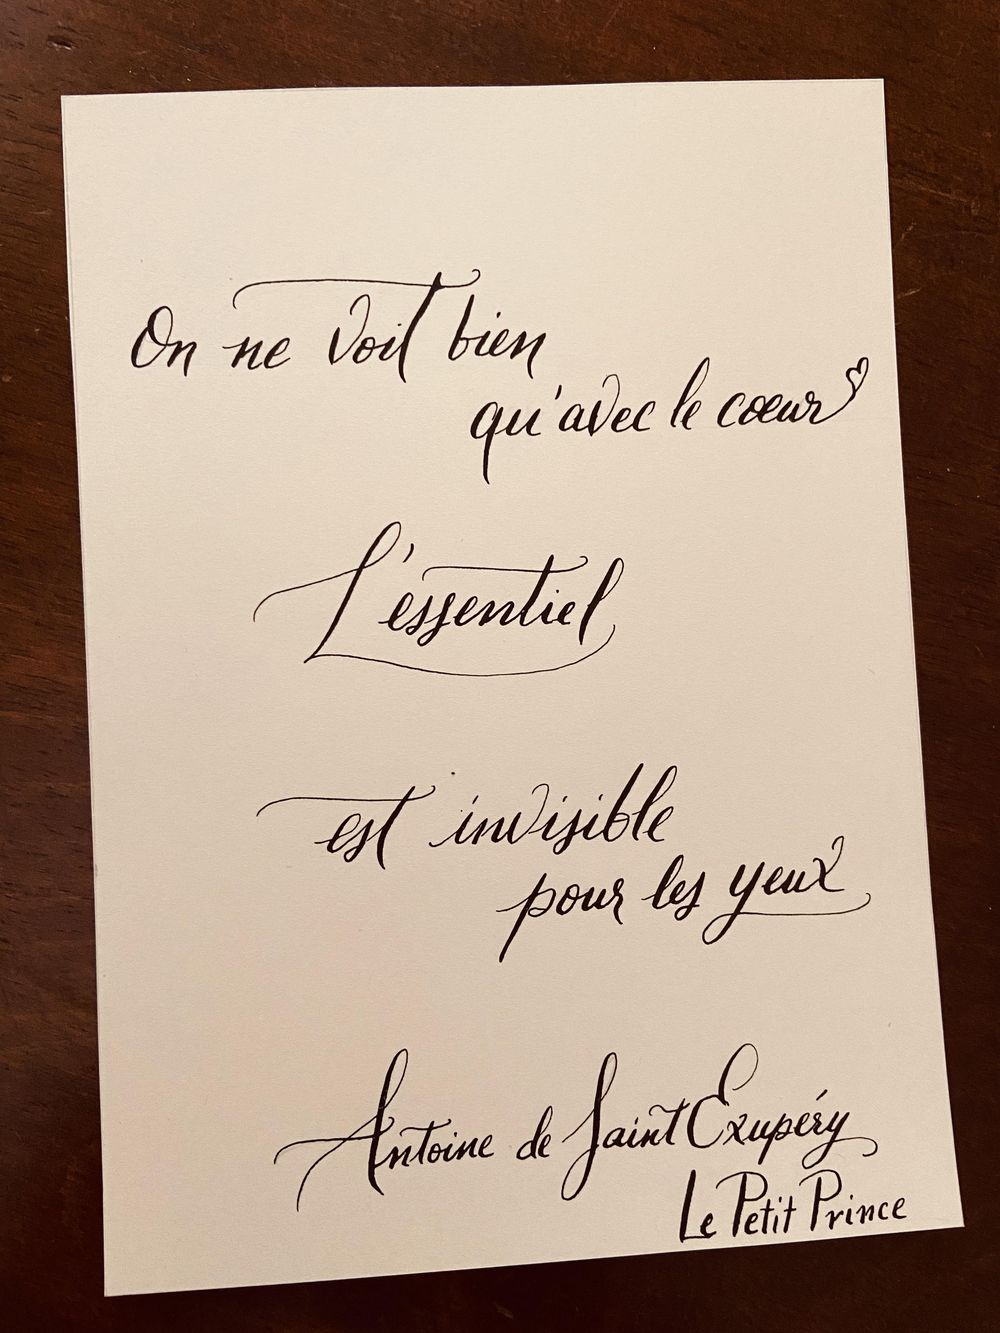 Two Favorite French Quotes - image 1 - student project